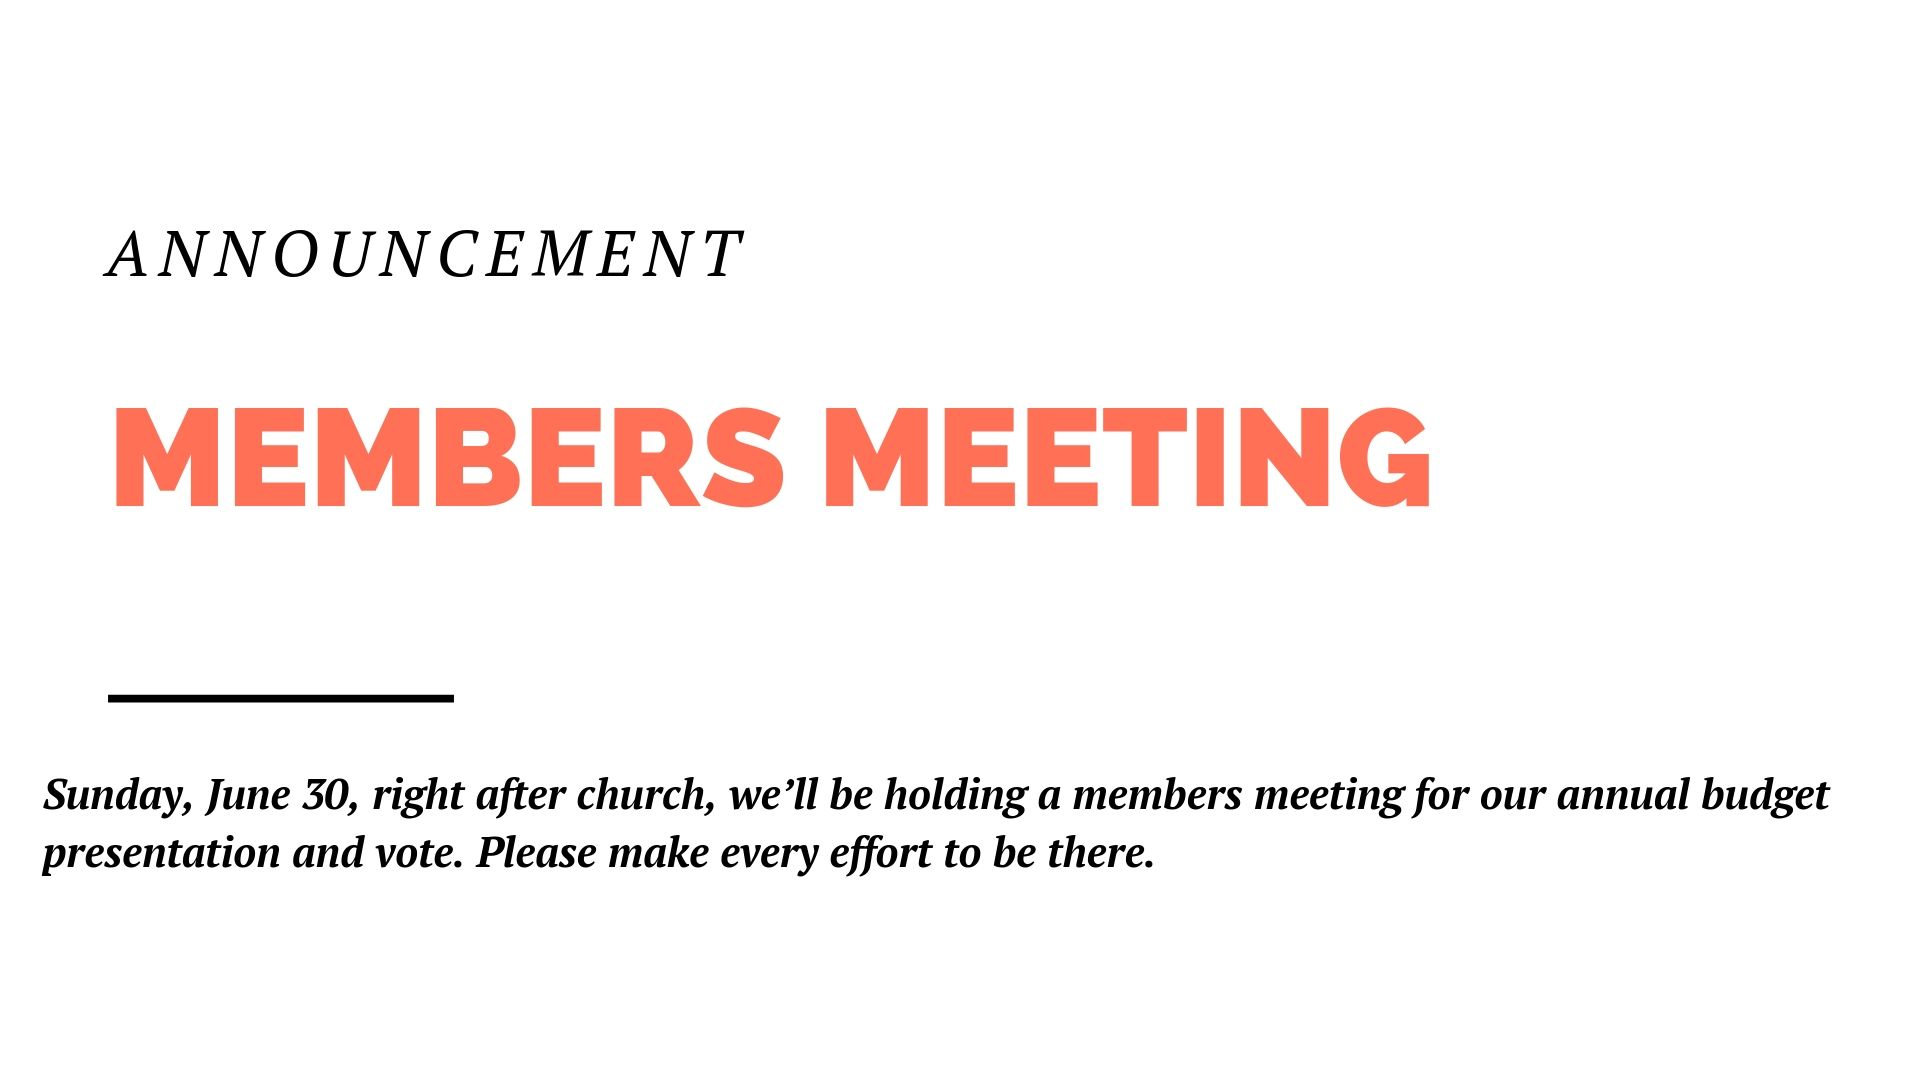 This Sunday, right after service, we'll be holding a members meeting to present our new budget proposal and vote. We'll also be serving a tamale lunch at the meeting. Even if you are not a member at our church, you are welcome to join us.